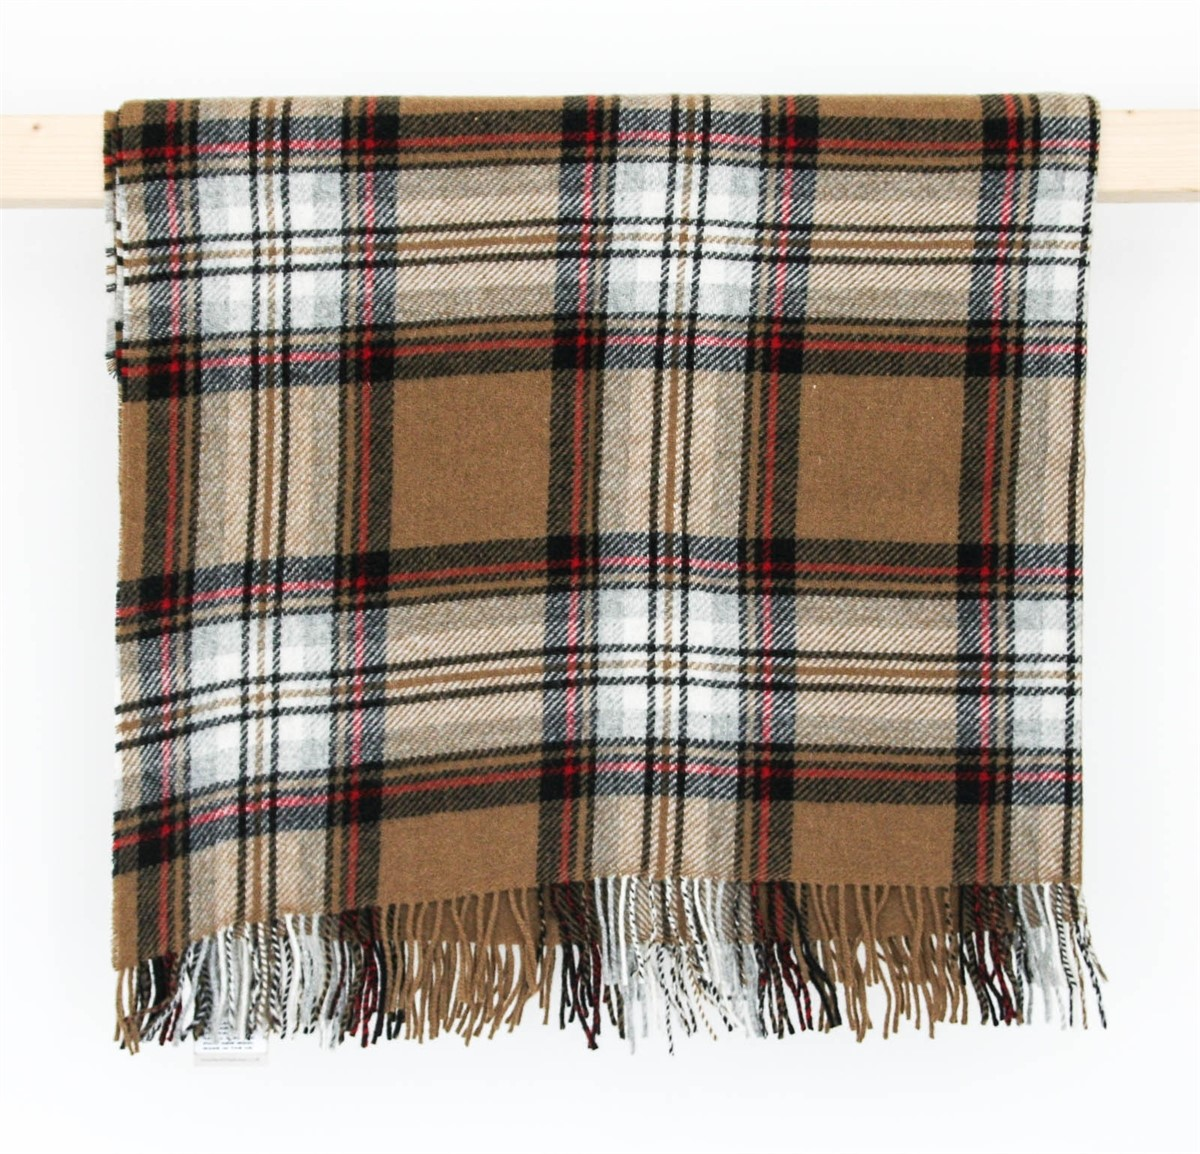 wool blanket online british made gifts tartan wool picnic blanket camel stewart highland. Black Bedroom Furniture Sets. Home Design Ideas